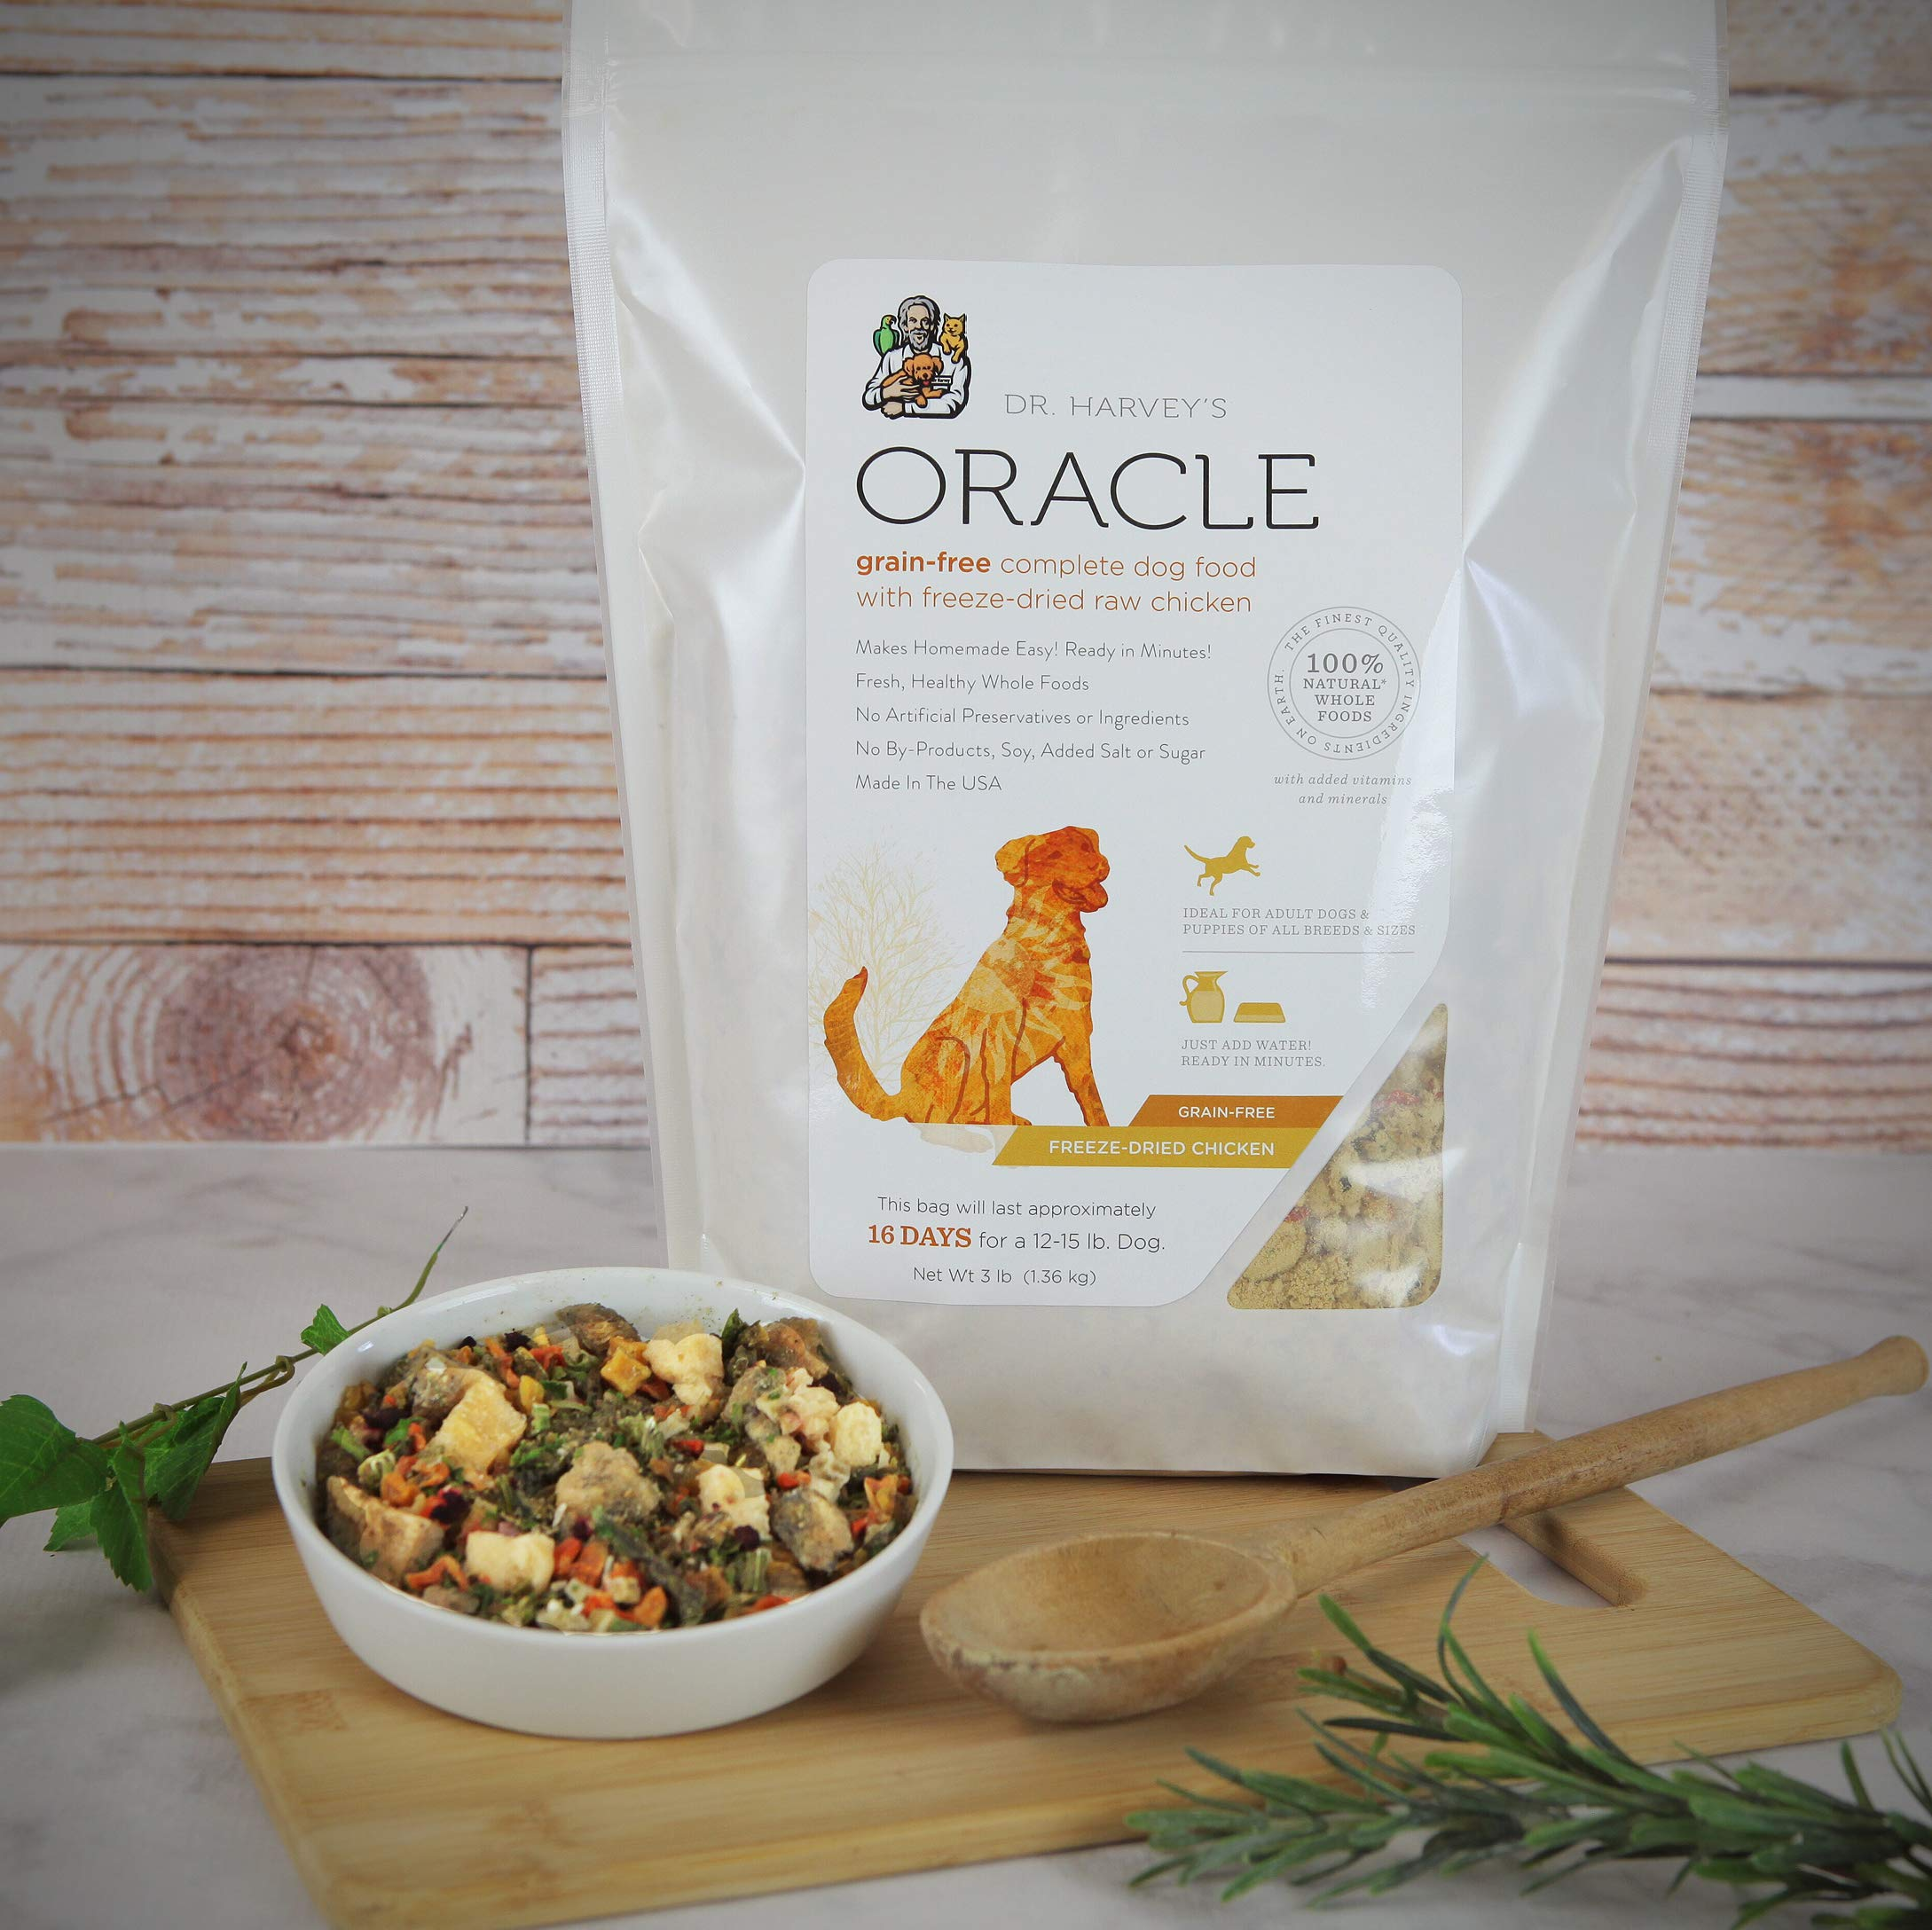 Dr. Harvey's Oracle Grain Free Complete Dog Food with Freeze Dried Raw Chicken for Dogs, 100% Natural Whole Foods (3 Pounds) by Dr. Harvey's